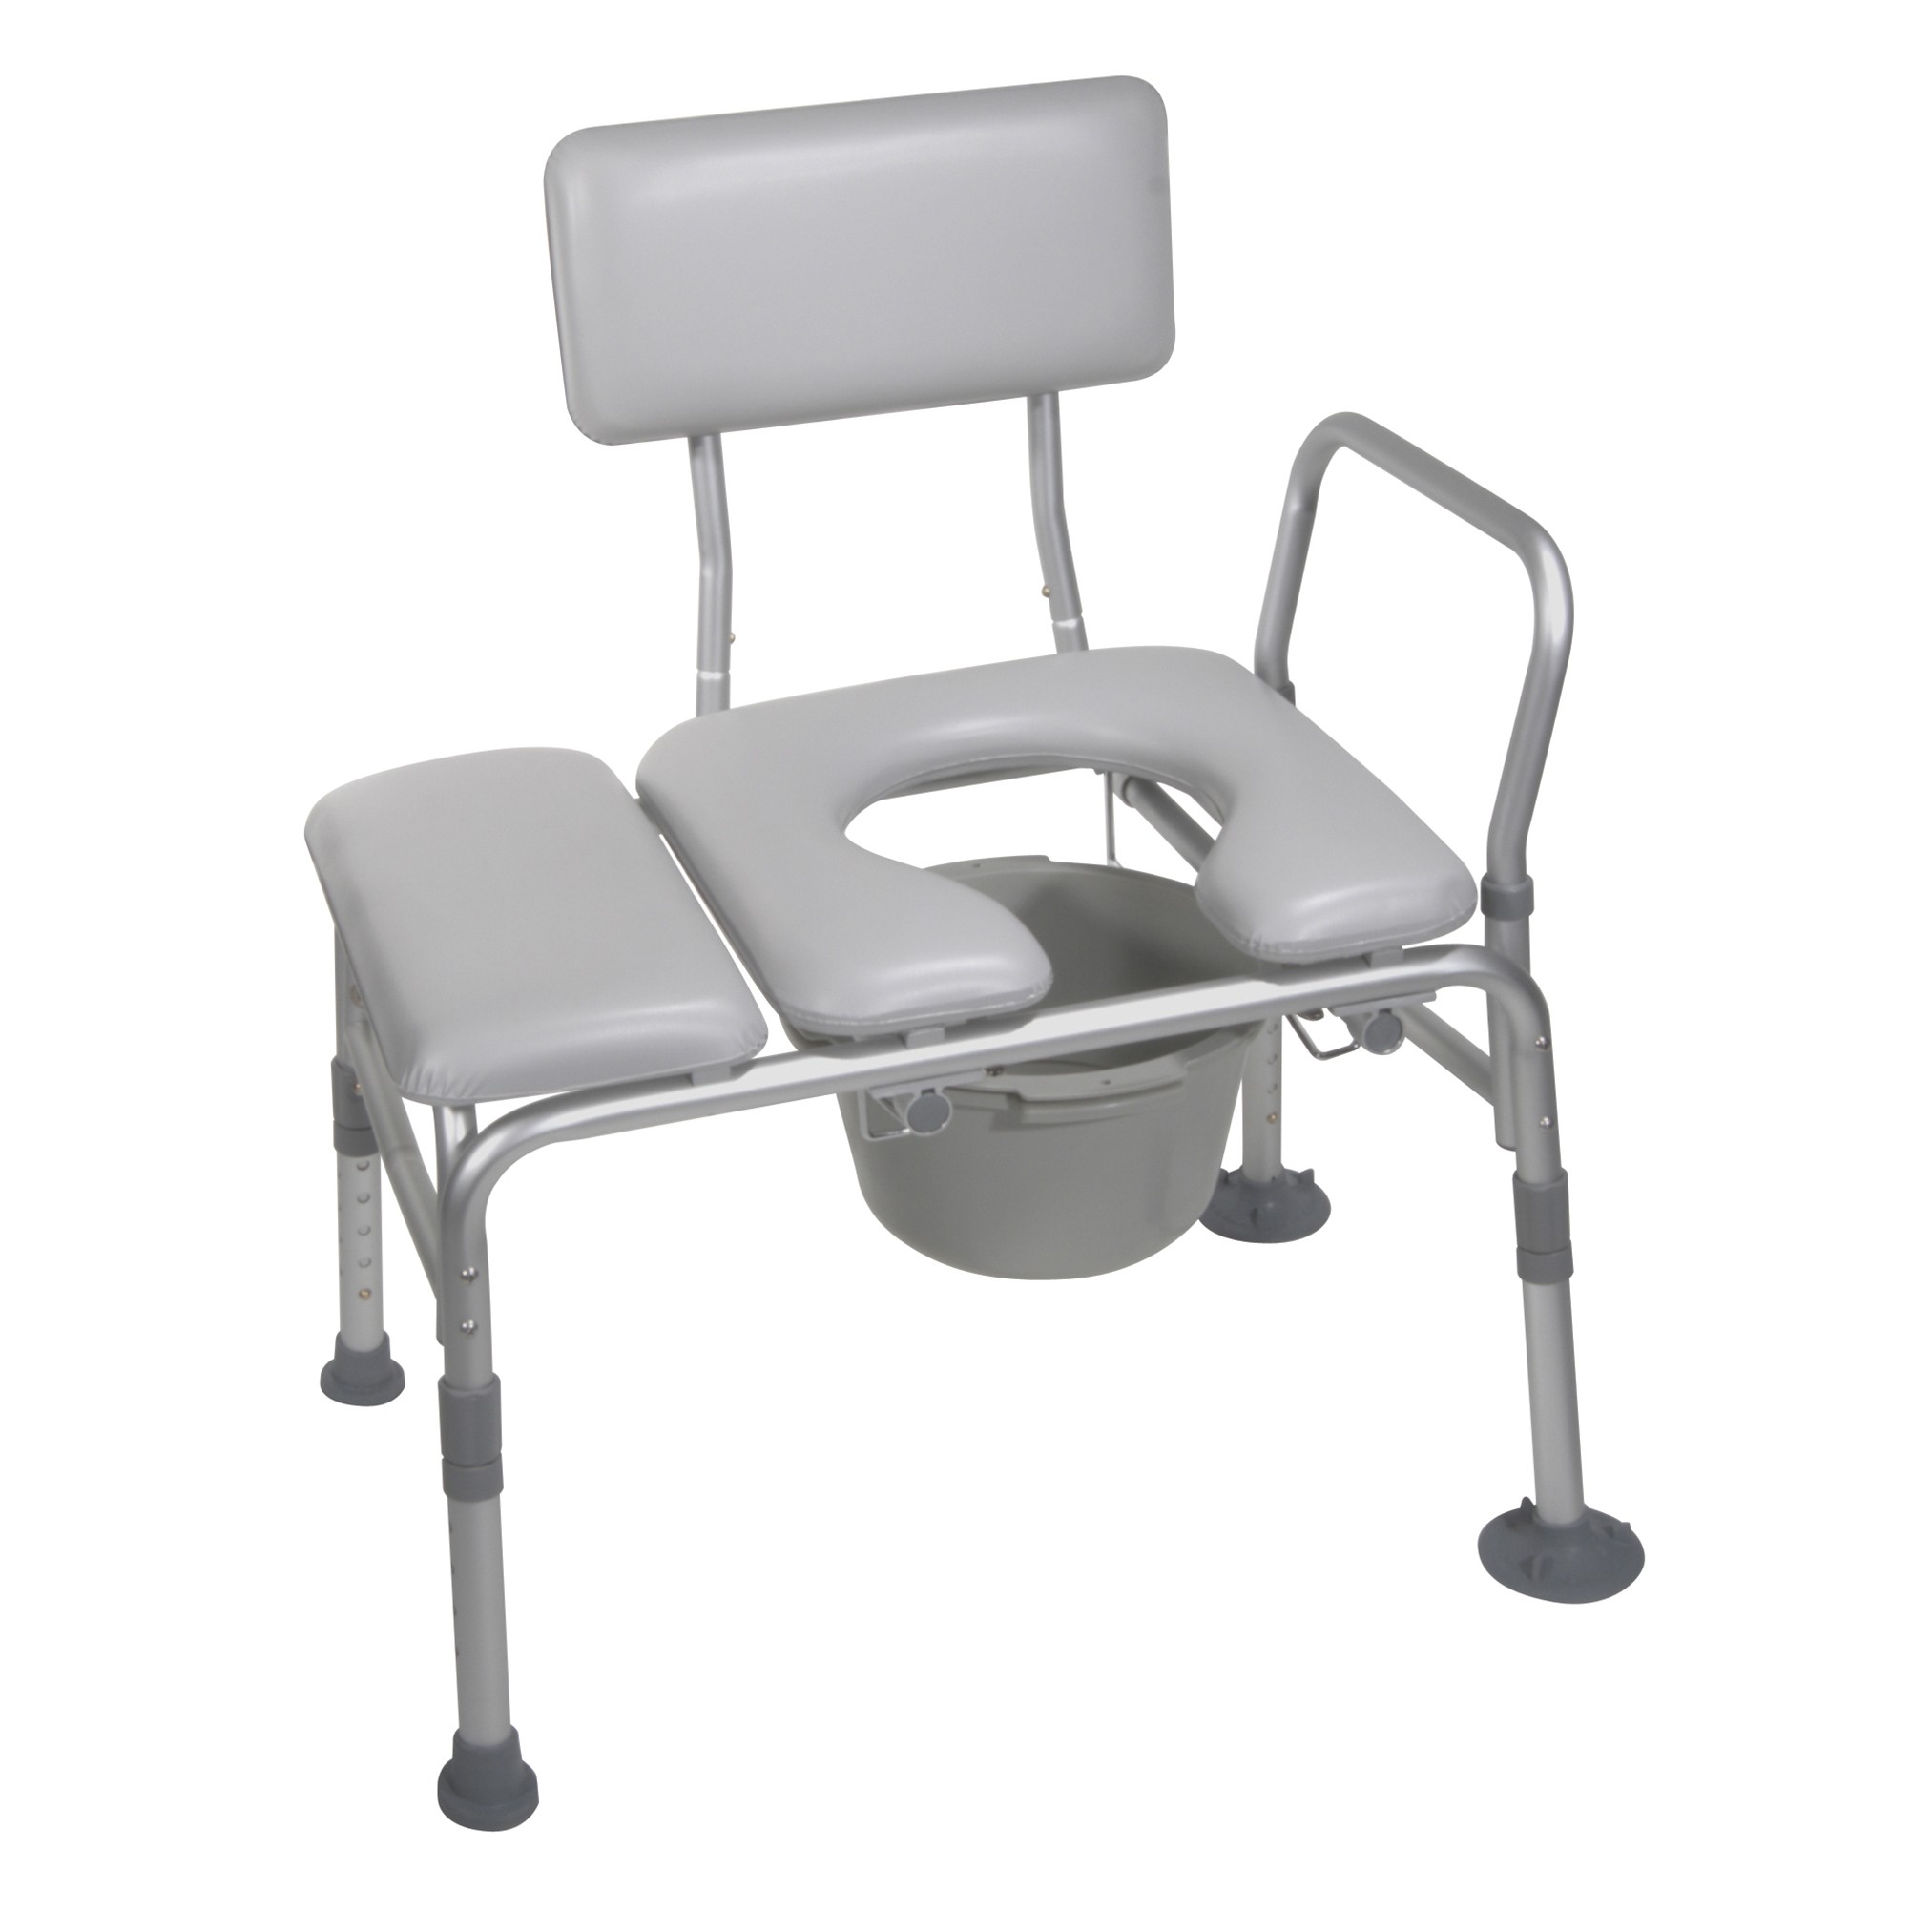 Padded seat transfer bench with commode opening Padded bench seat